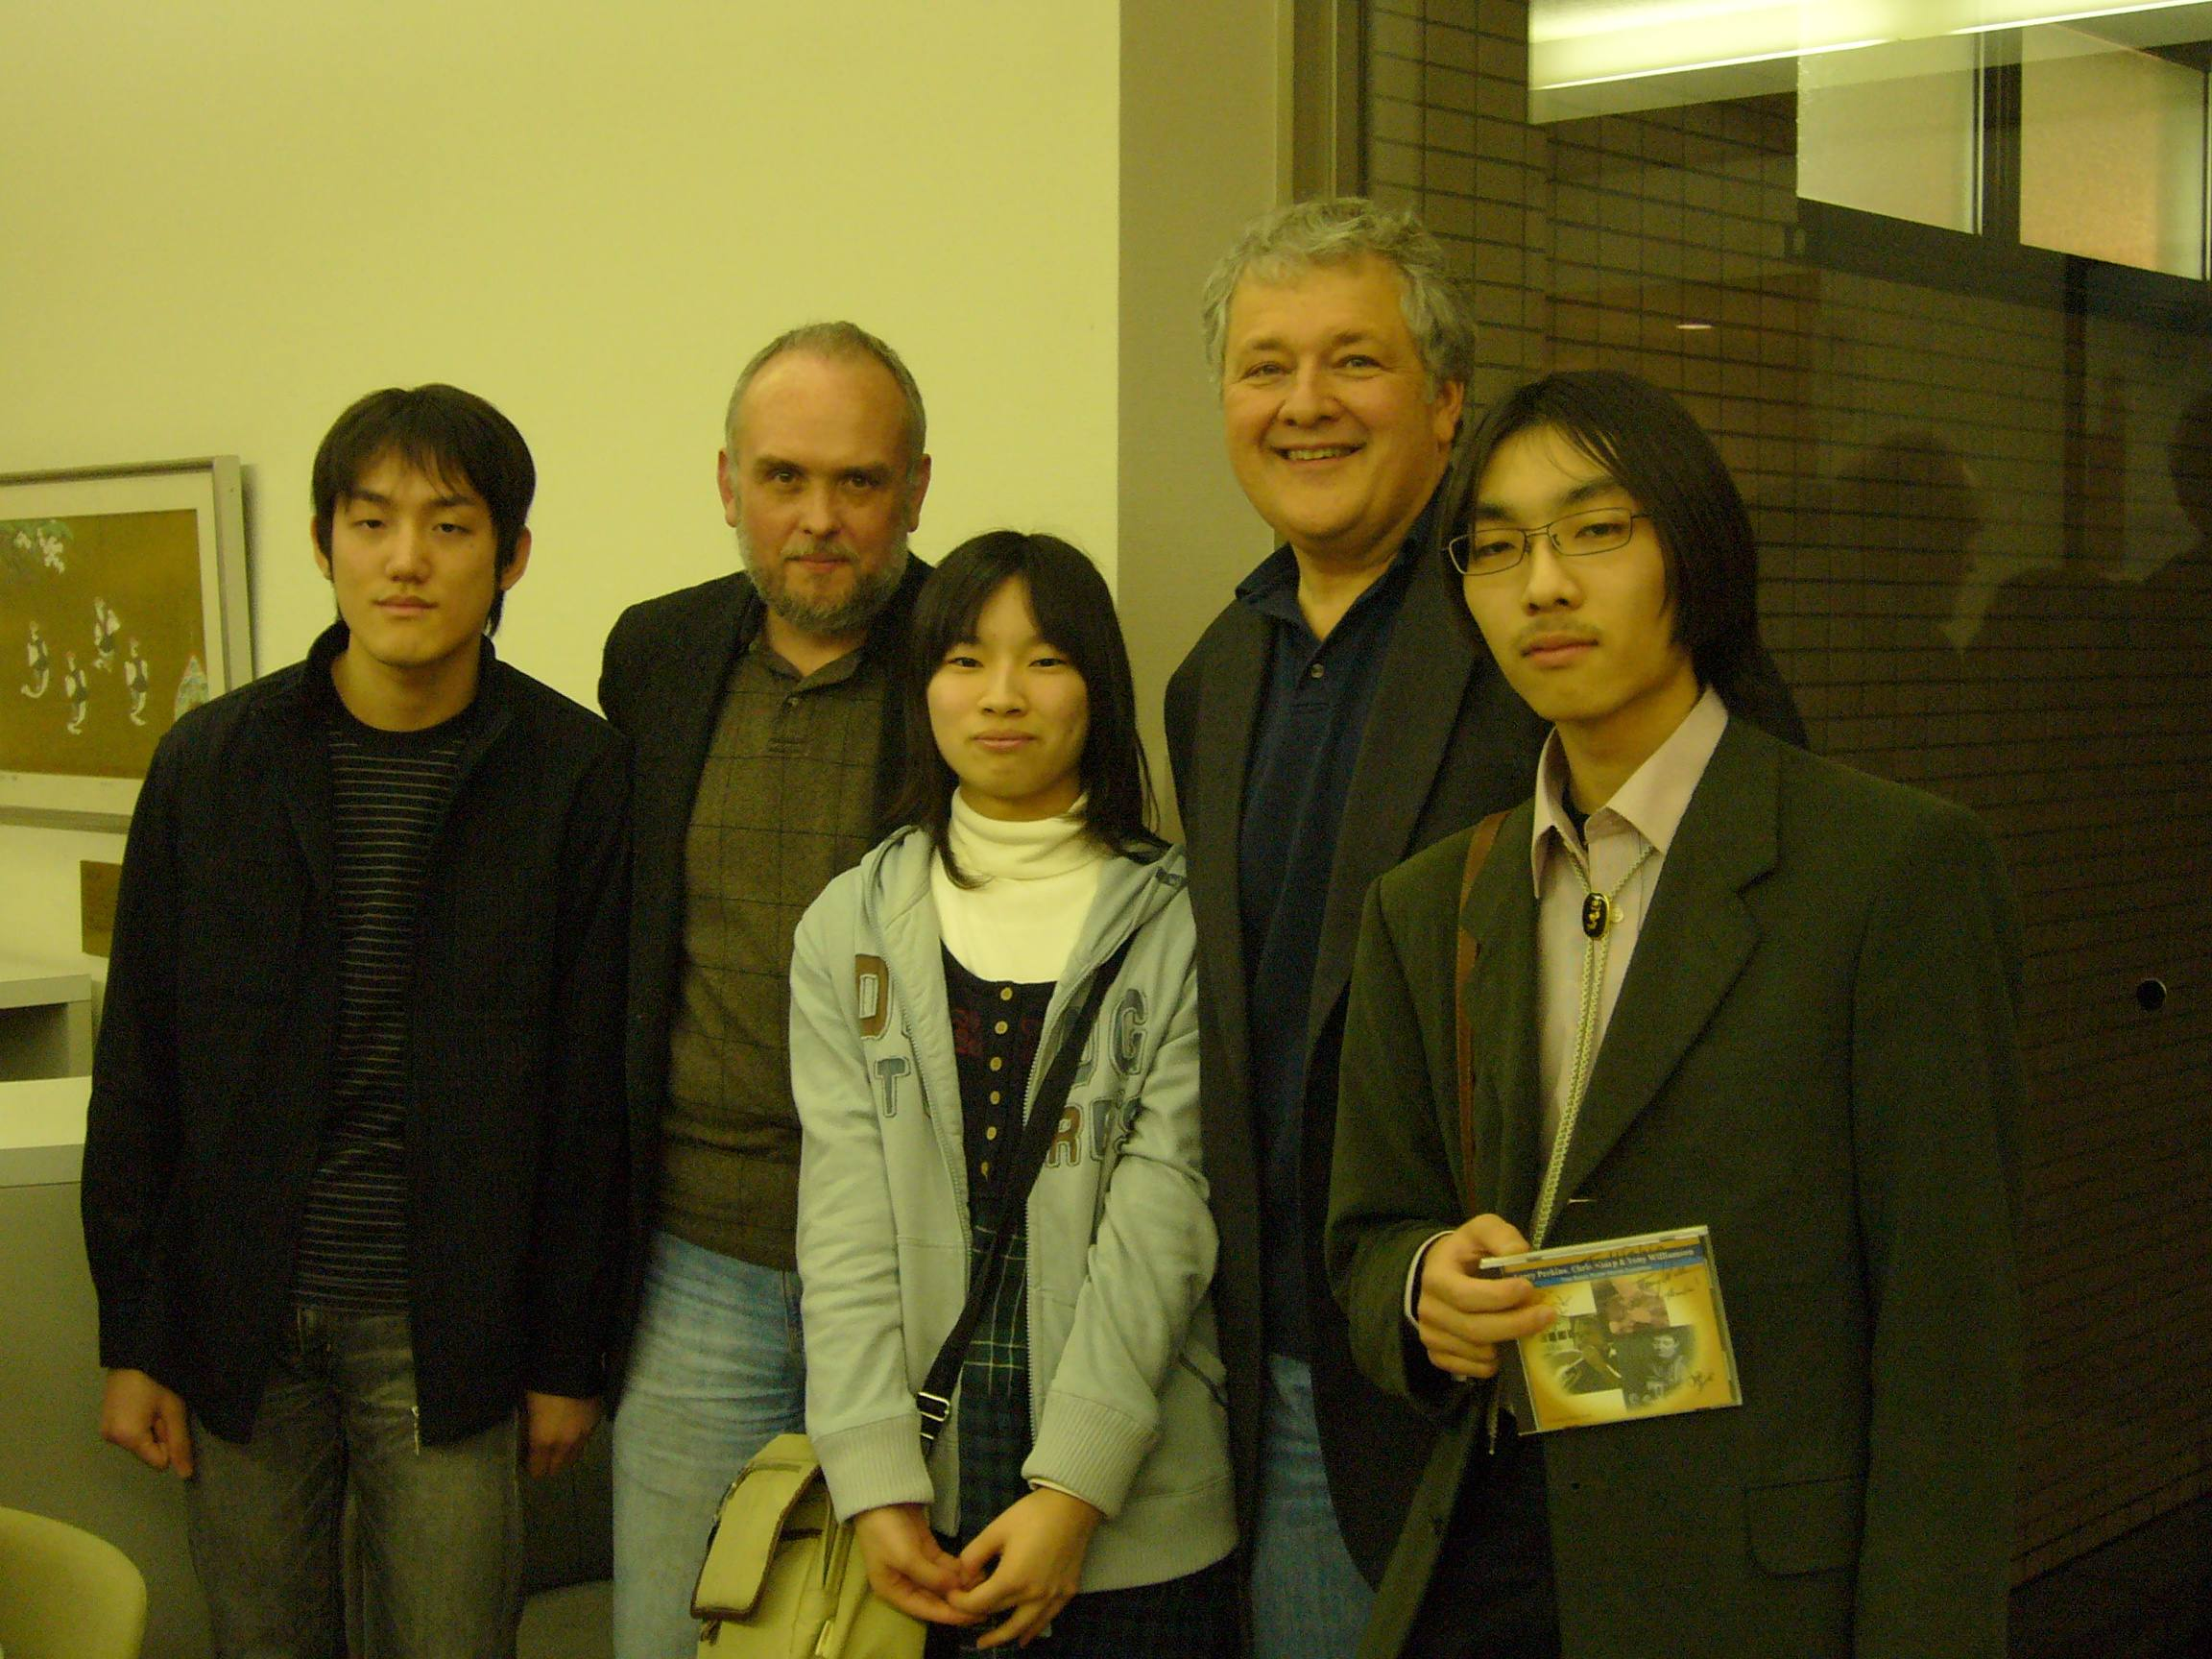 Tony, Larry Perkins and fans in Japan 2008